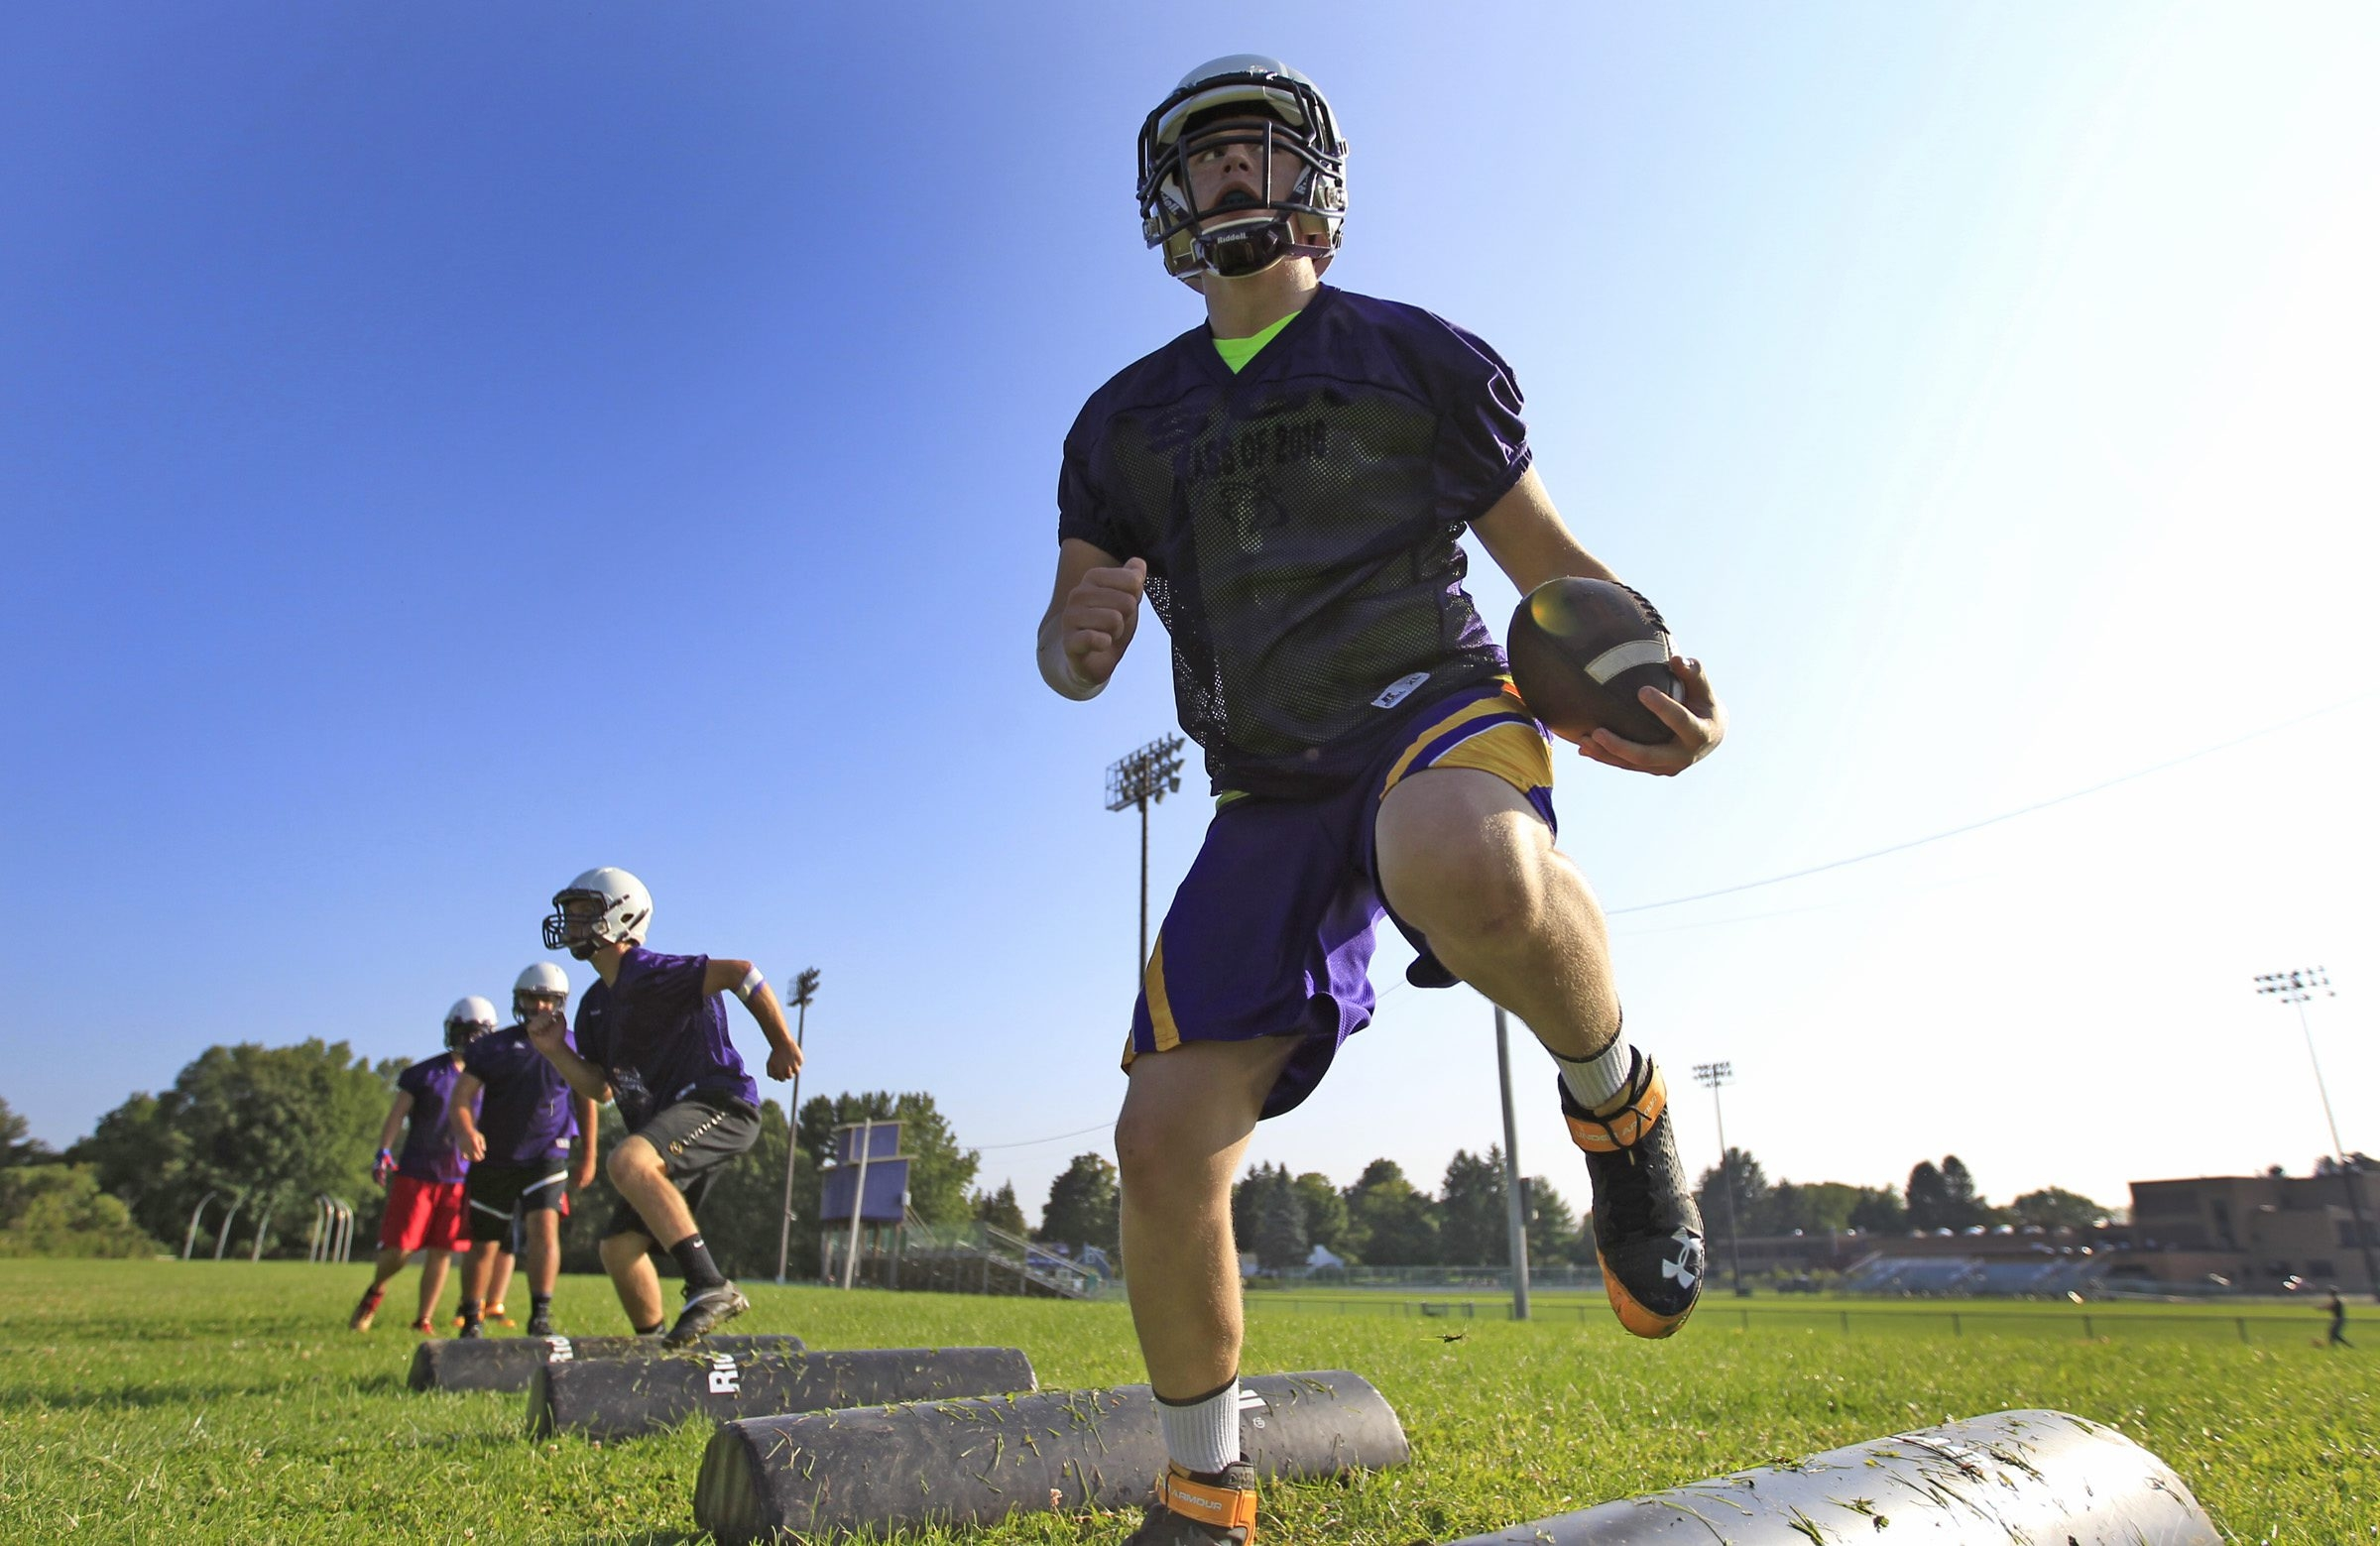 Greyson Louth from the Springville Griffins football teams runs a drill during practice on Tuesday, Aug. 19, 2014.  (Harry Scull Jr/Buffalo News)